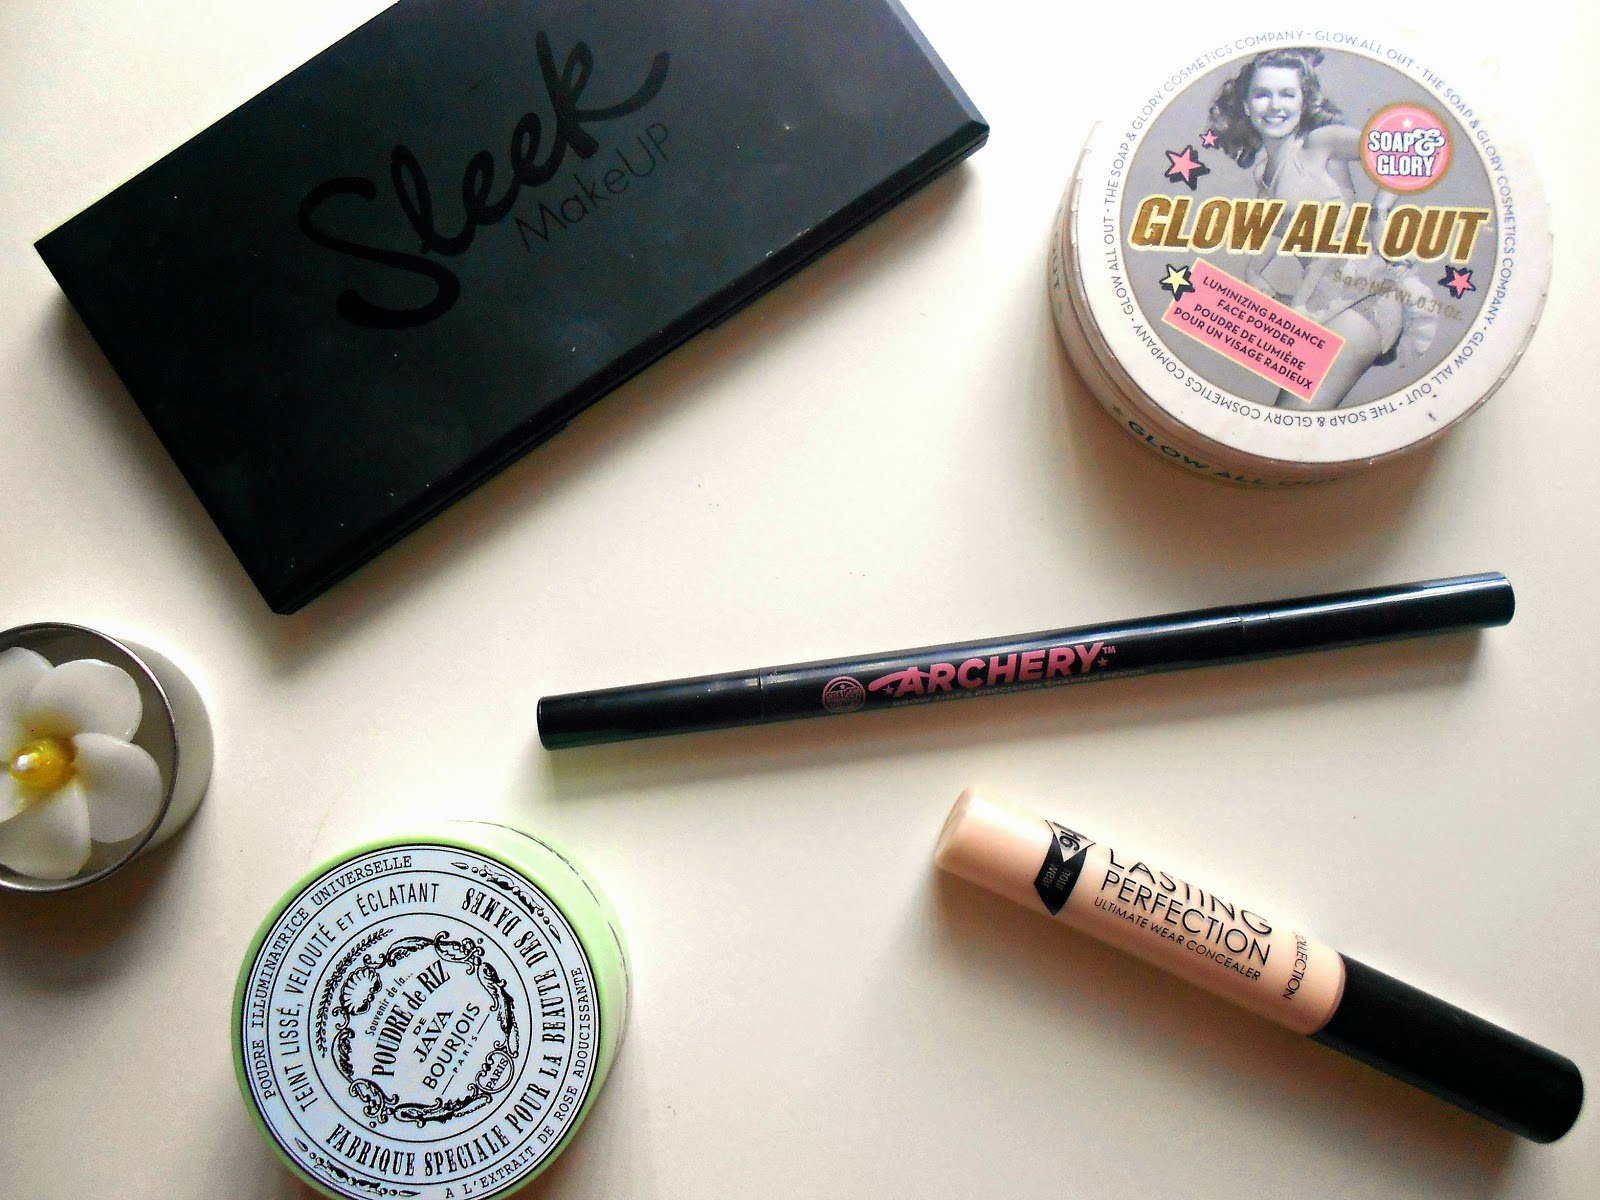 drugstore favourites